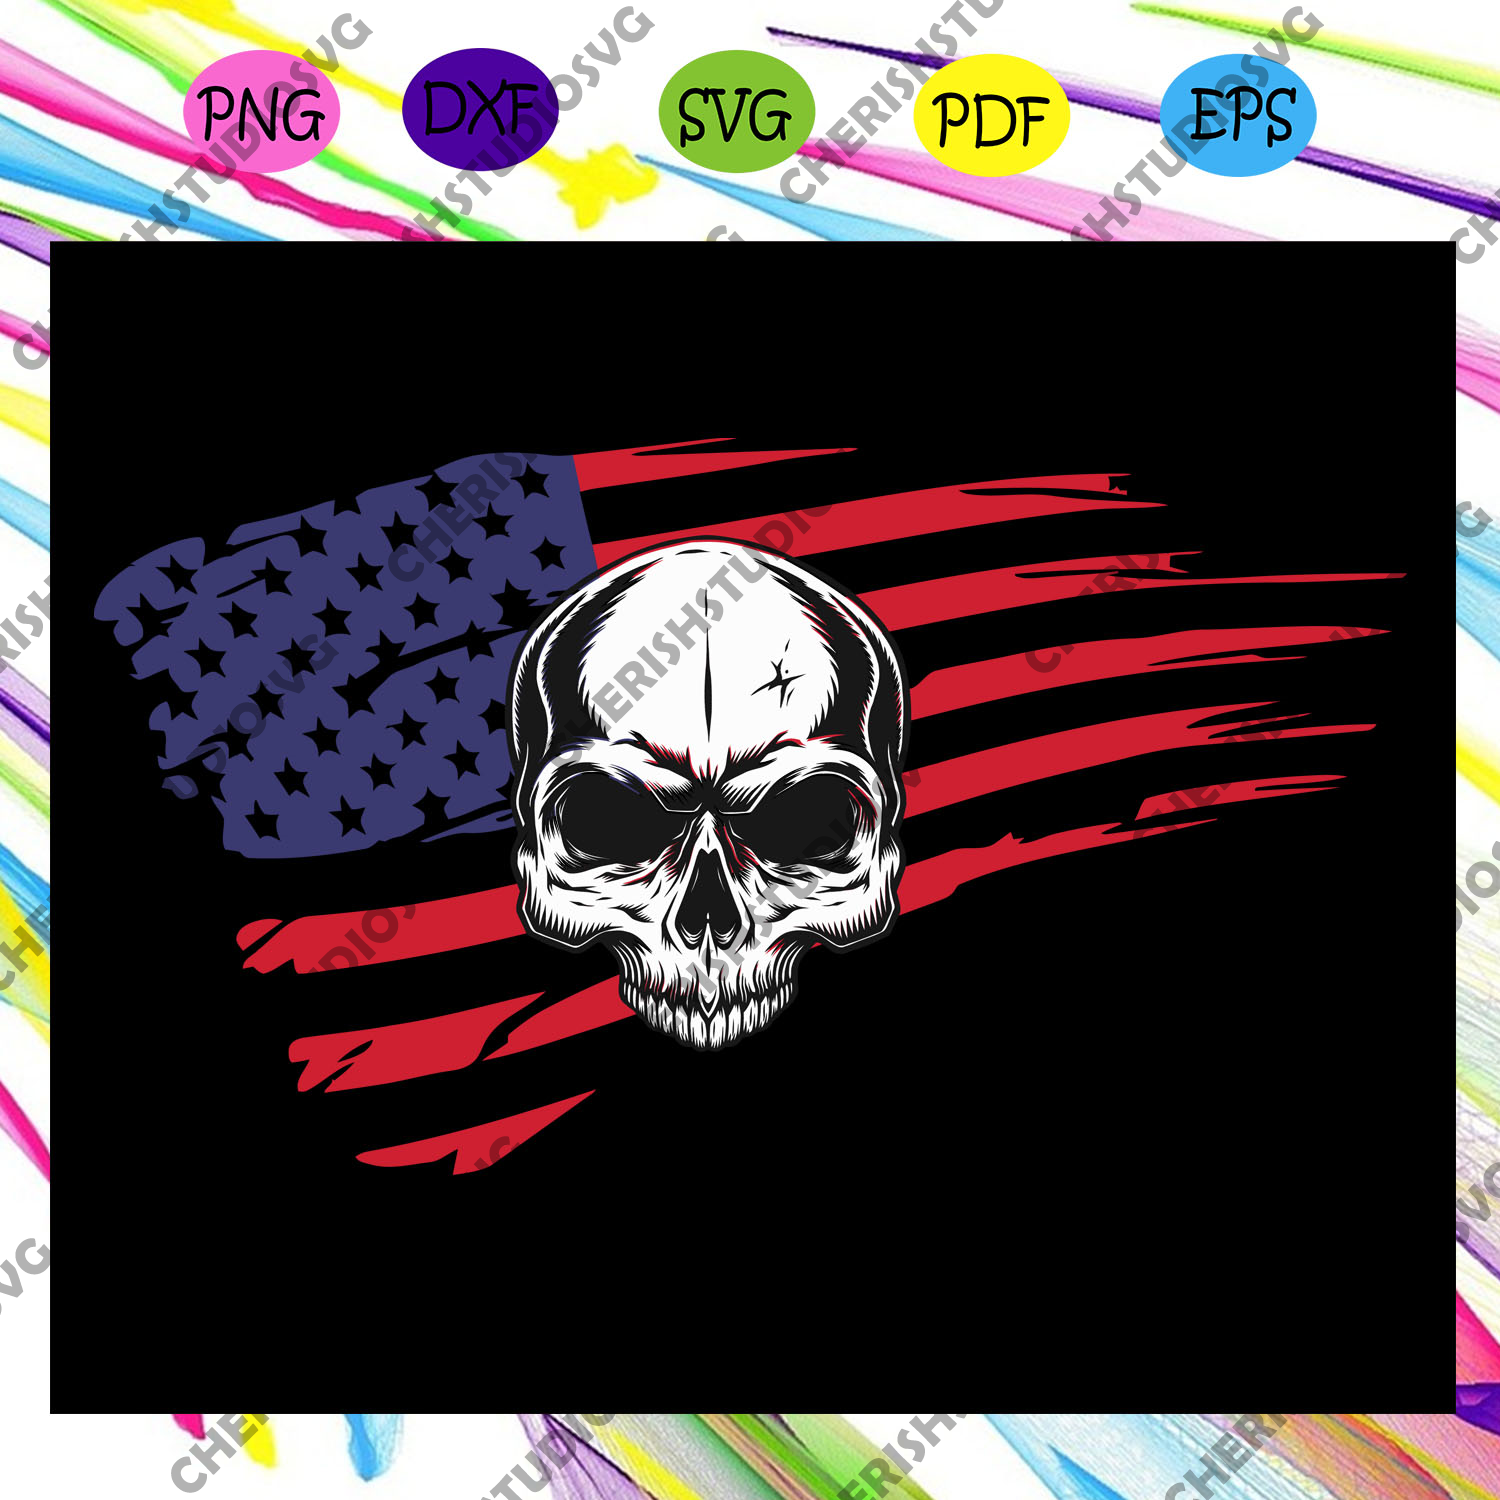 America skull flag, independence day svg,american flag, happy 4th of july svg,patriotic svg, independence day gift,For Silhouette, Files For Cricut, SVG, DXF, EPS, PNG Instant Download